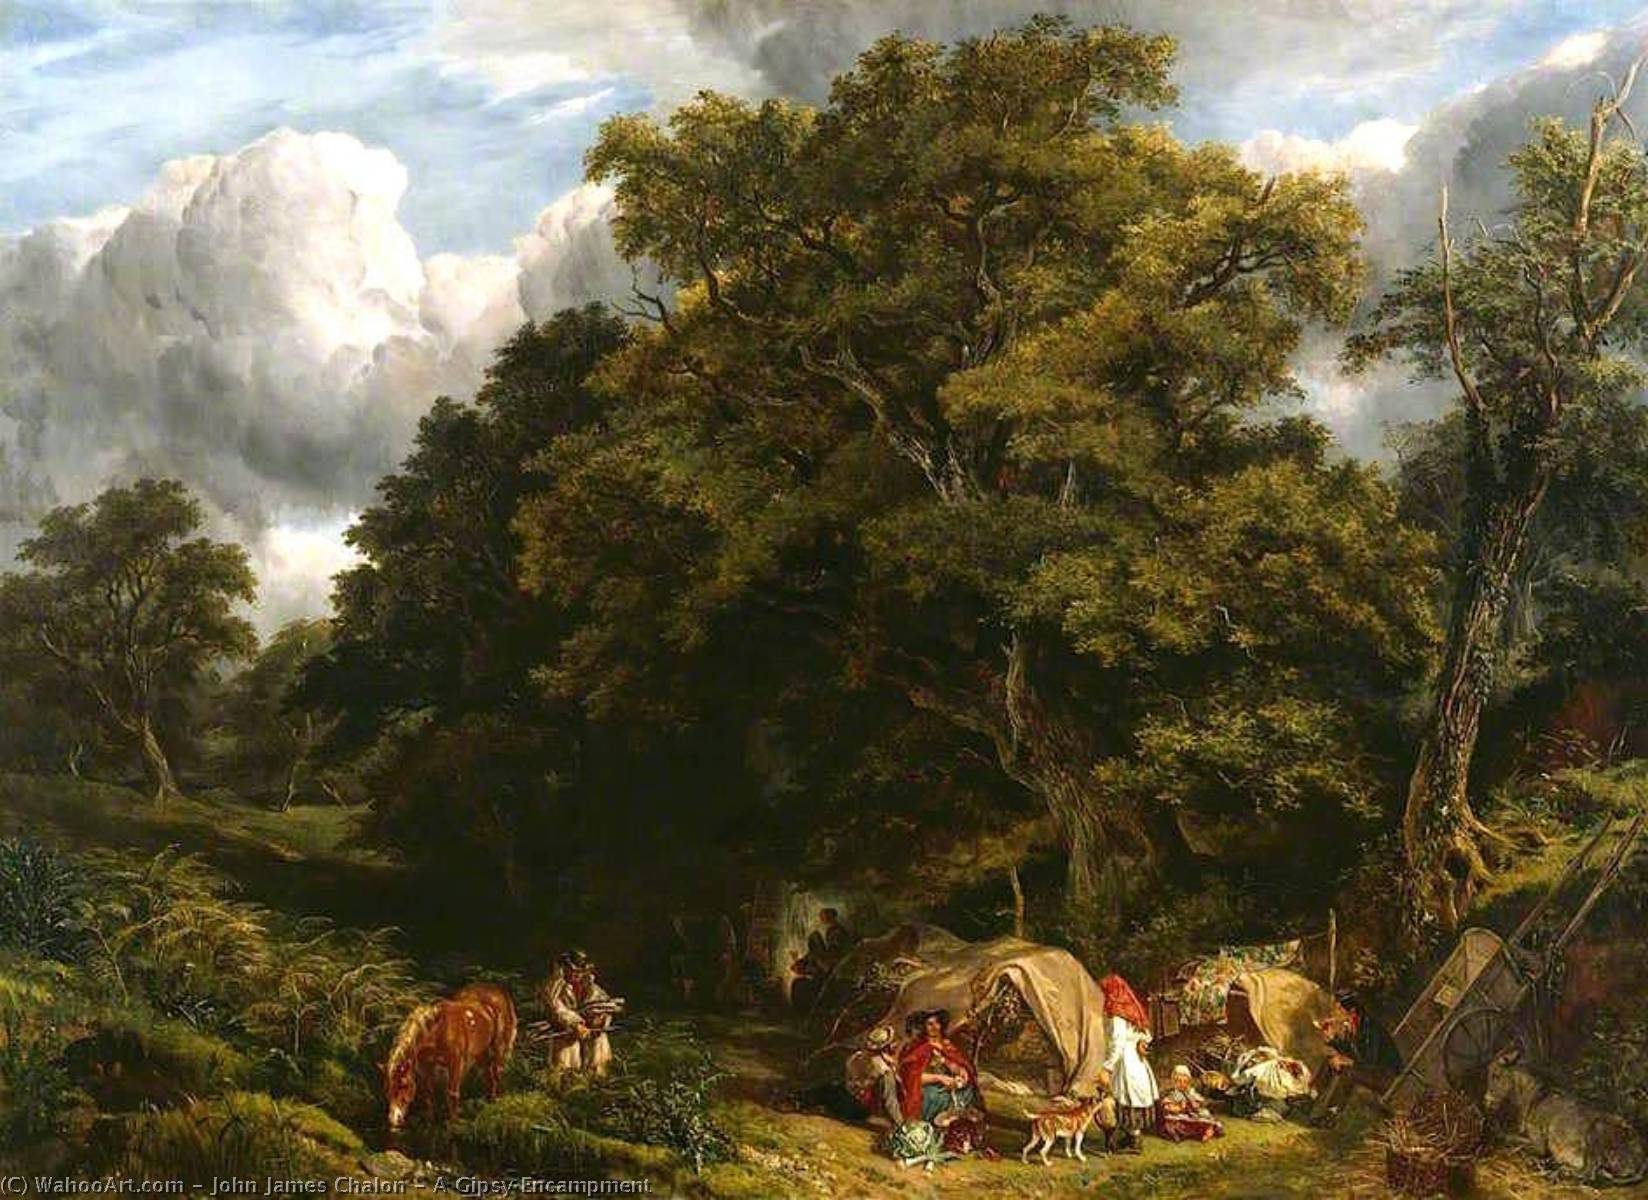 A Gipsy Encampment, Oil On Canvas by John James Chalon (1778-1854)